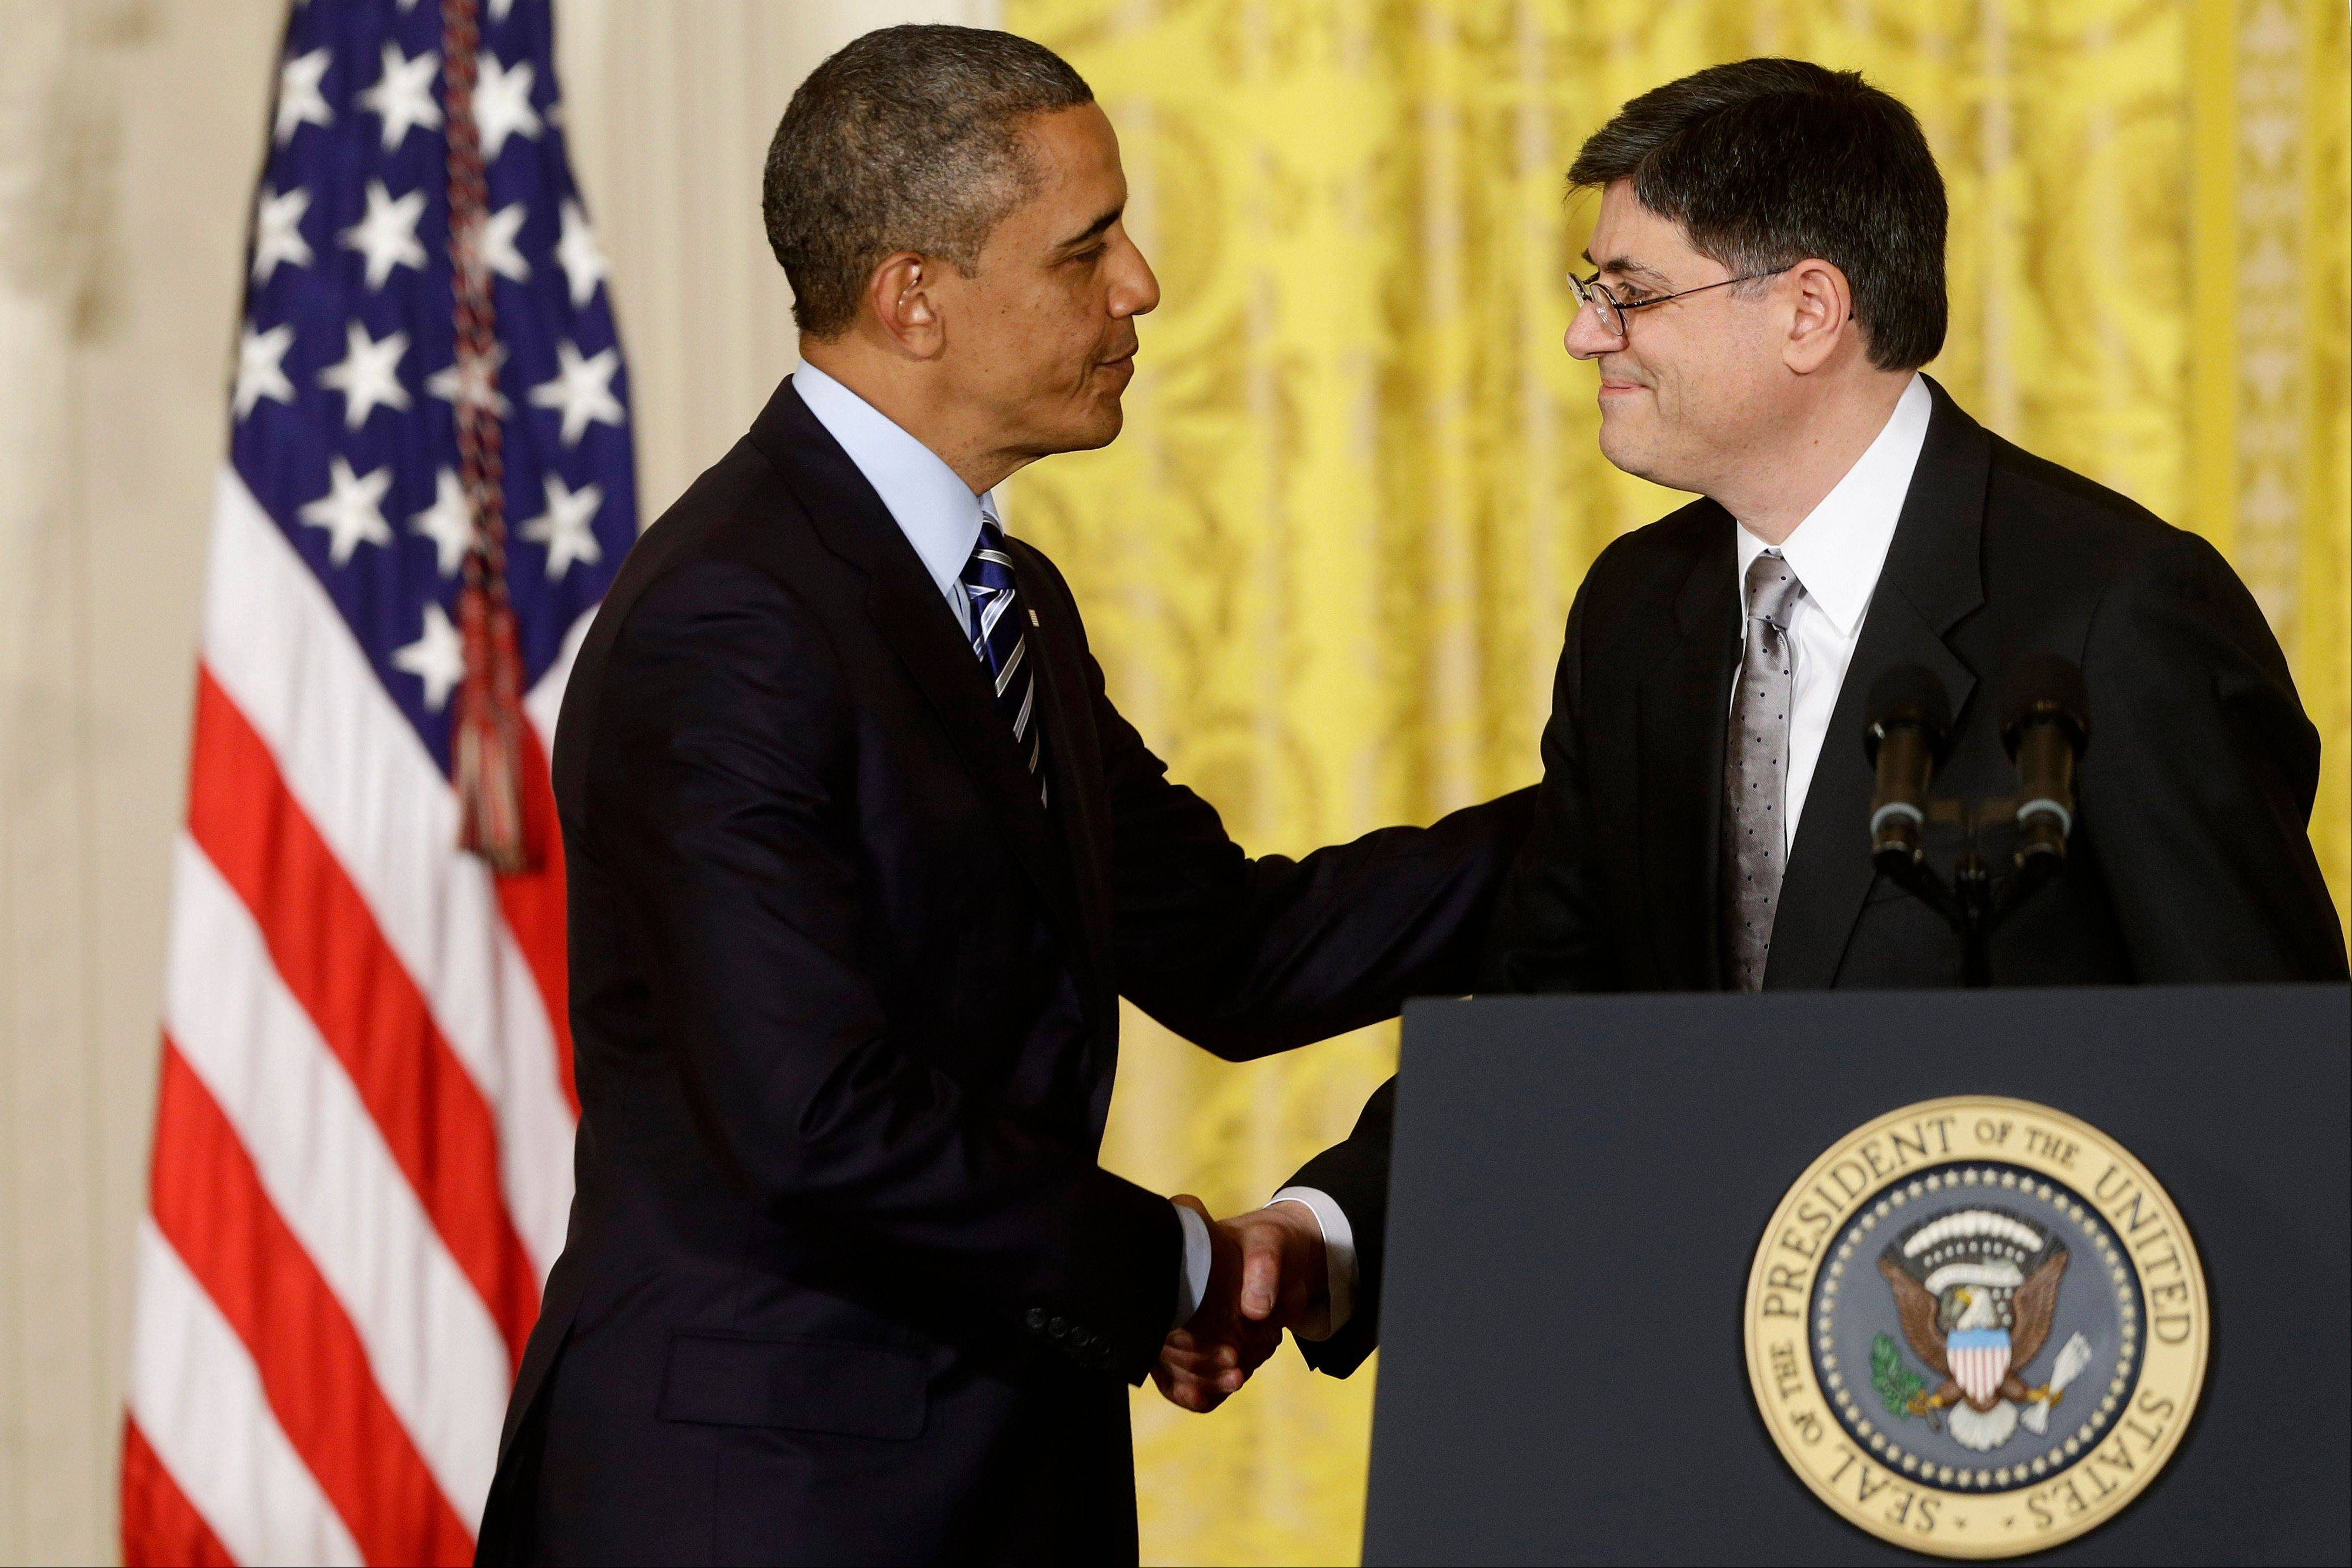 President Barack Obama shakes hands with current White House Chief of Staff Jack Lew in the East Room of the White House Thursday, after announcing he will nominate Lew as the next Treasury secretary.